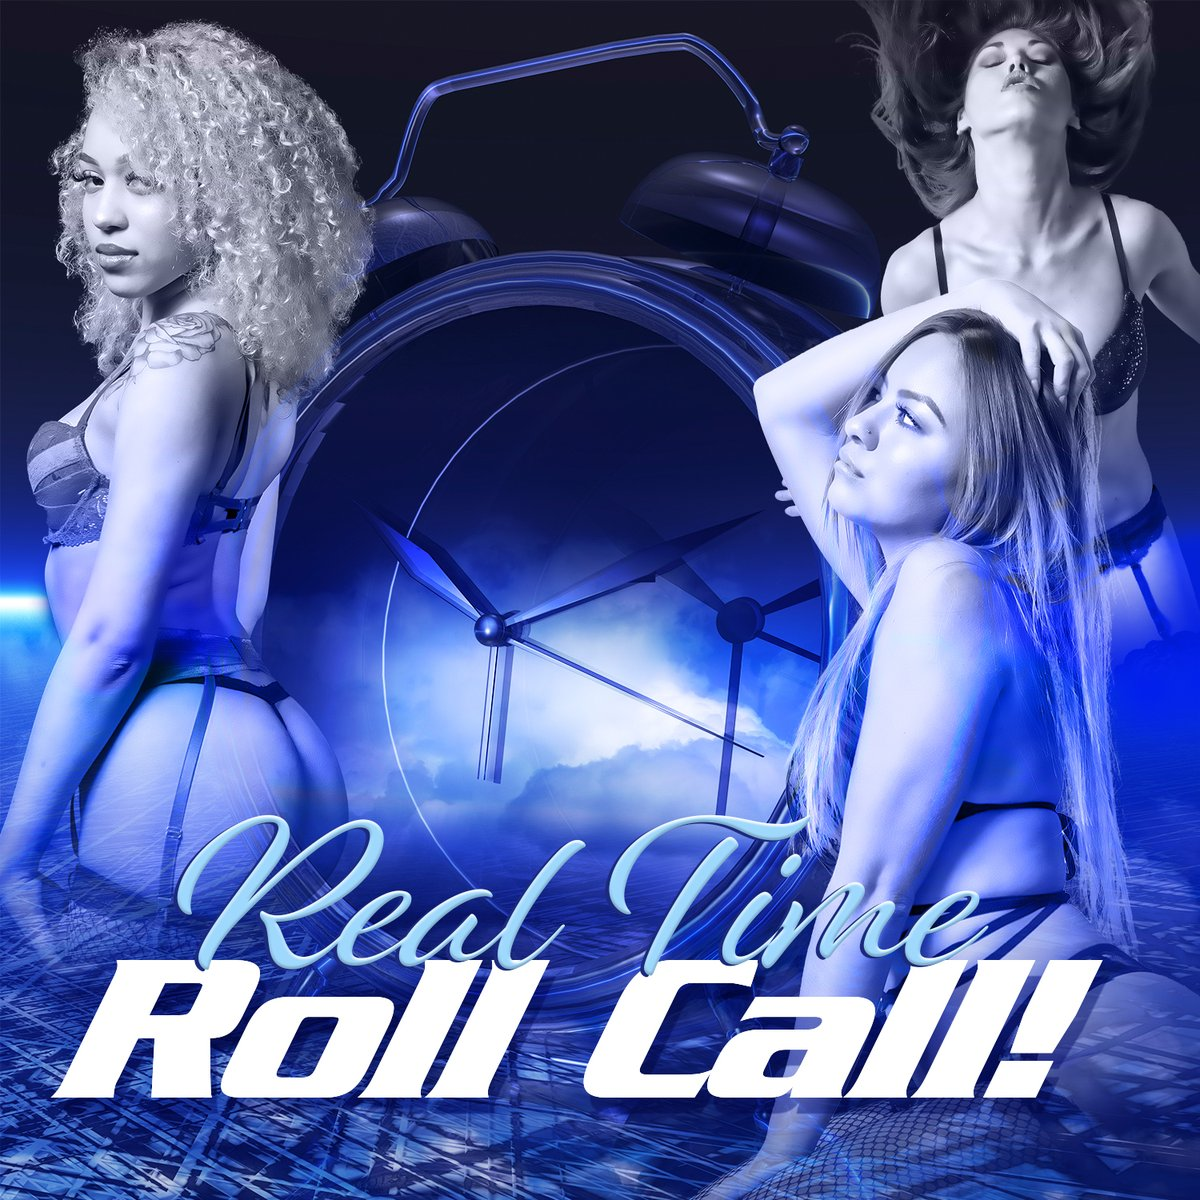 Things are heating up with KUSH, ROSE, CODIE, XASHA, SUGAR, LUNA, DIAMOND, ASHLEY, IVY & PINK. Come on out and have some fun with us! . . . #Rollcall #ThirstyThursday #BYOB #ThursdayFootball #TheGame #MousesEar #JohnsonCity #StripJoint #StripClub